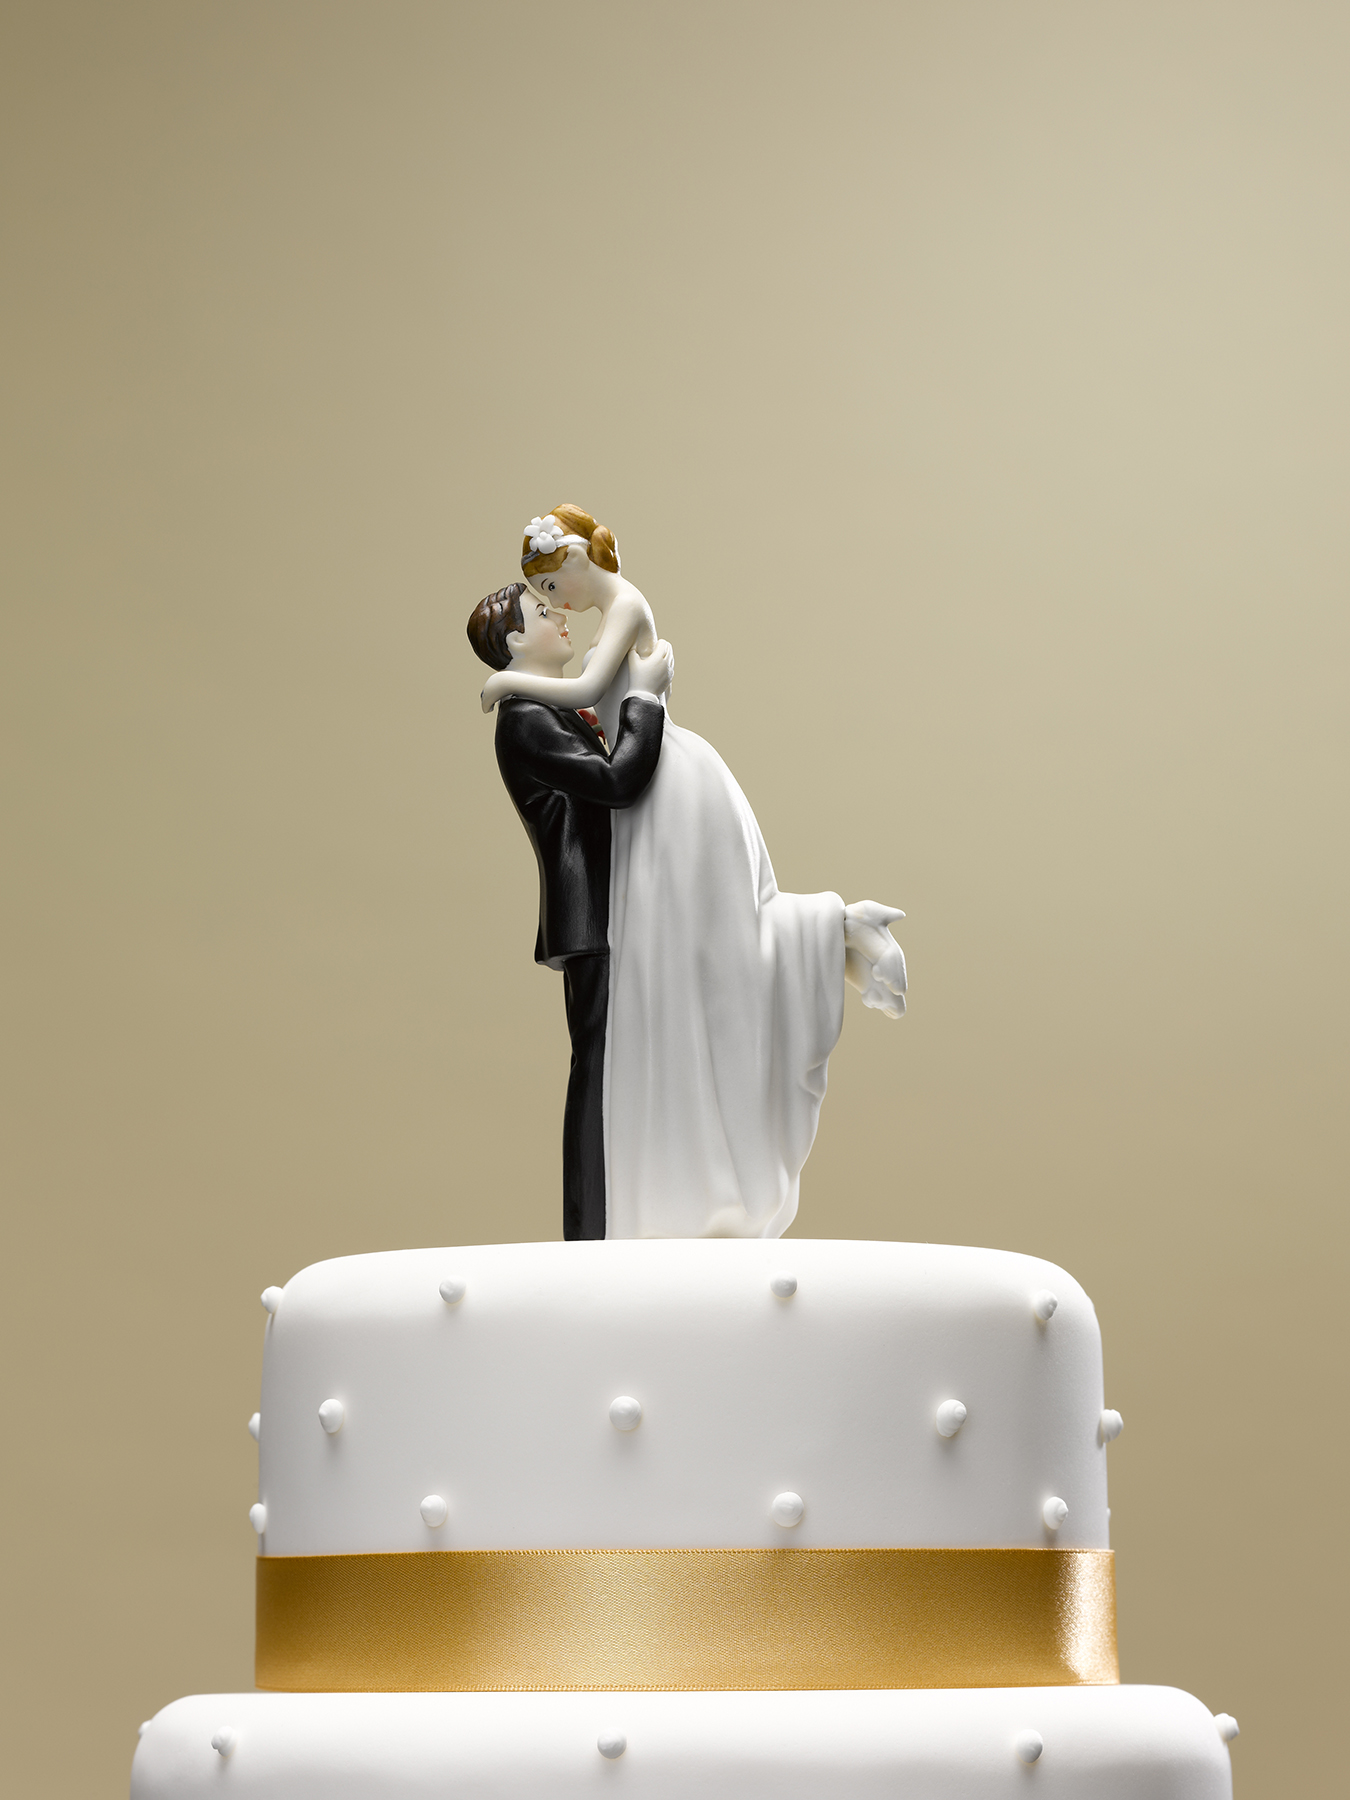 Bride and groom topper on wedding cake